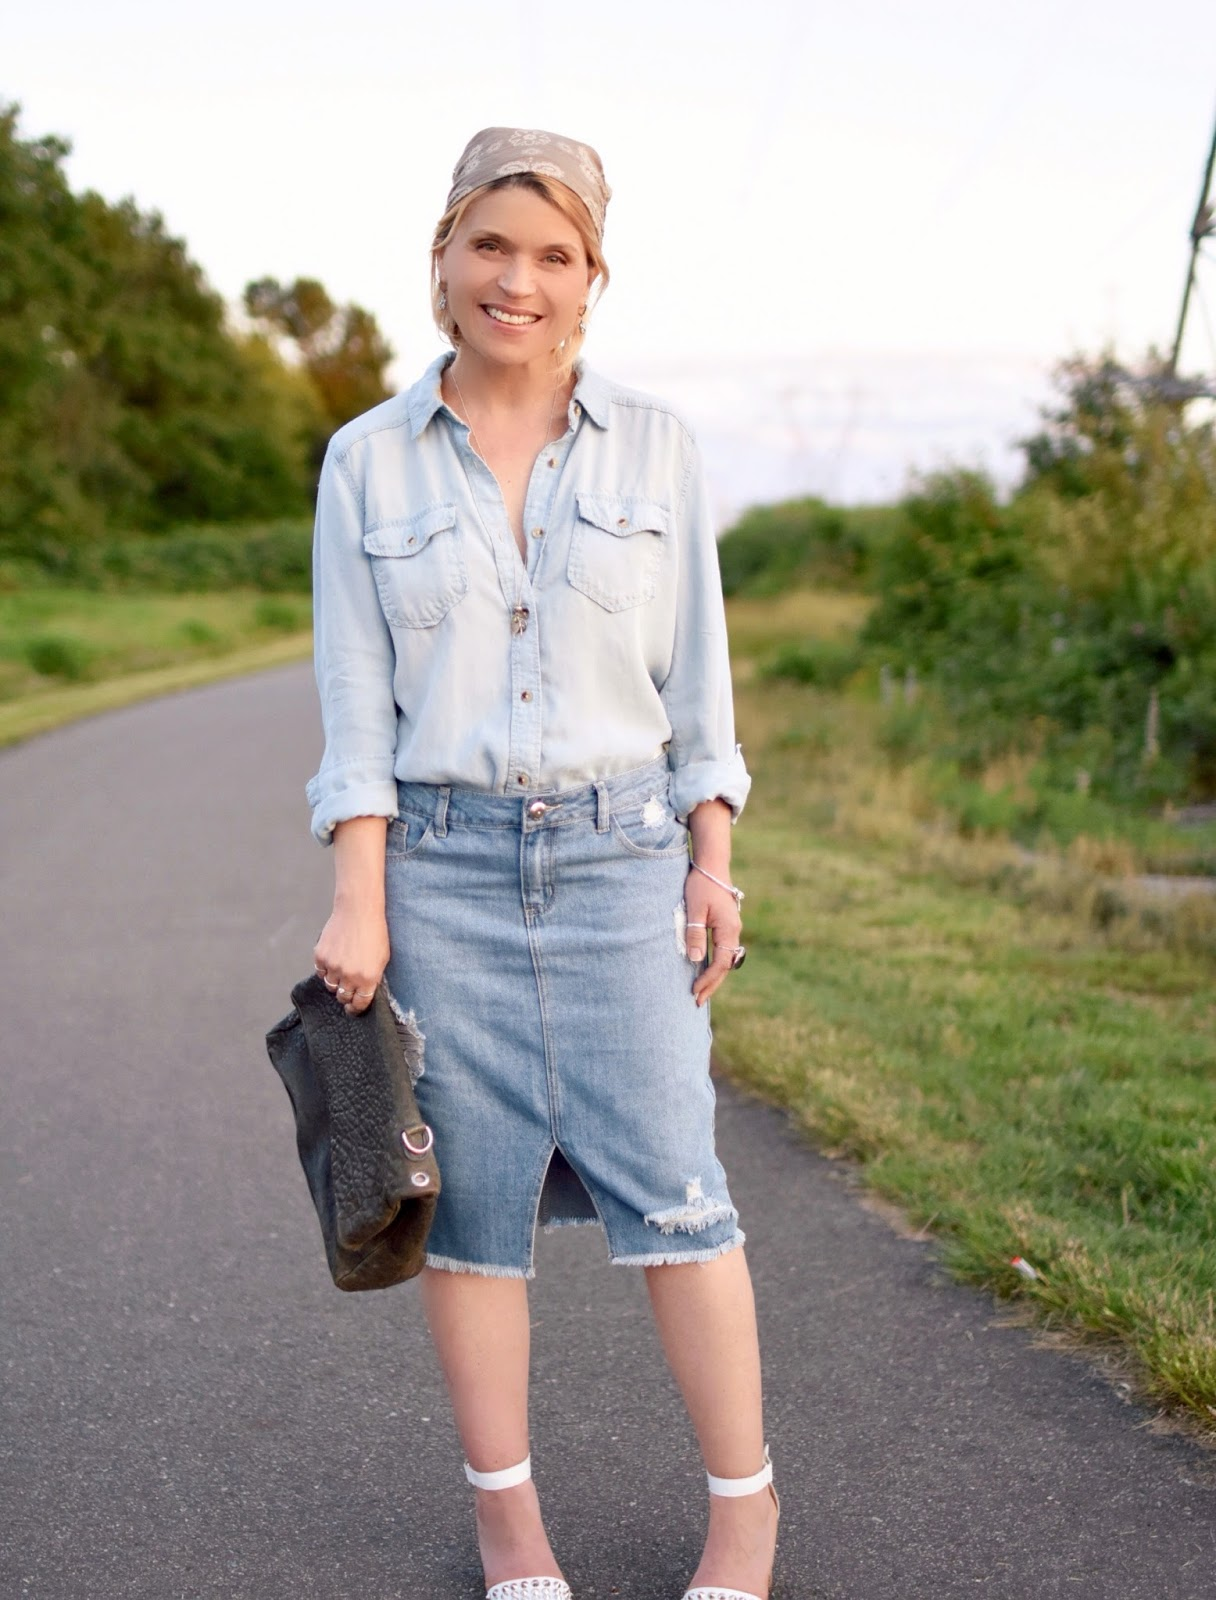 styling a distressed denim pencil skirt with a chambray shirt, studded ankle-strap sandals, and a paisley headscarf